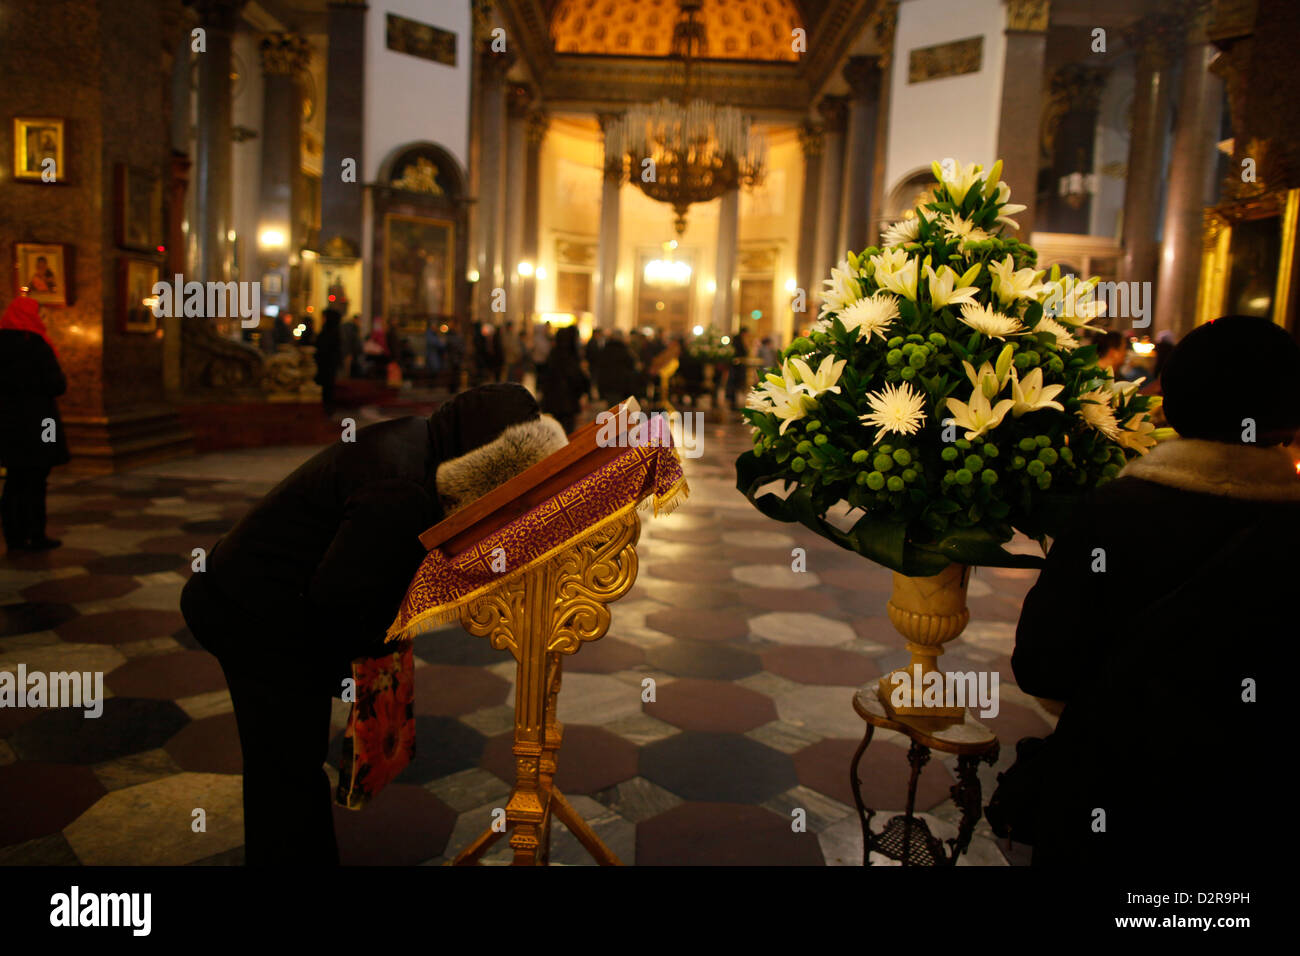 Russian Orthodox believer, Kazan Cathedral, St. Petersburg, Russia, Europe - Stock Image